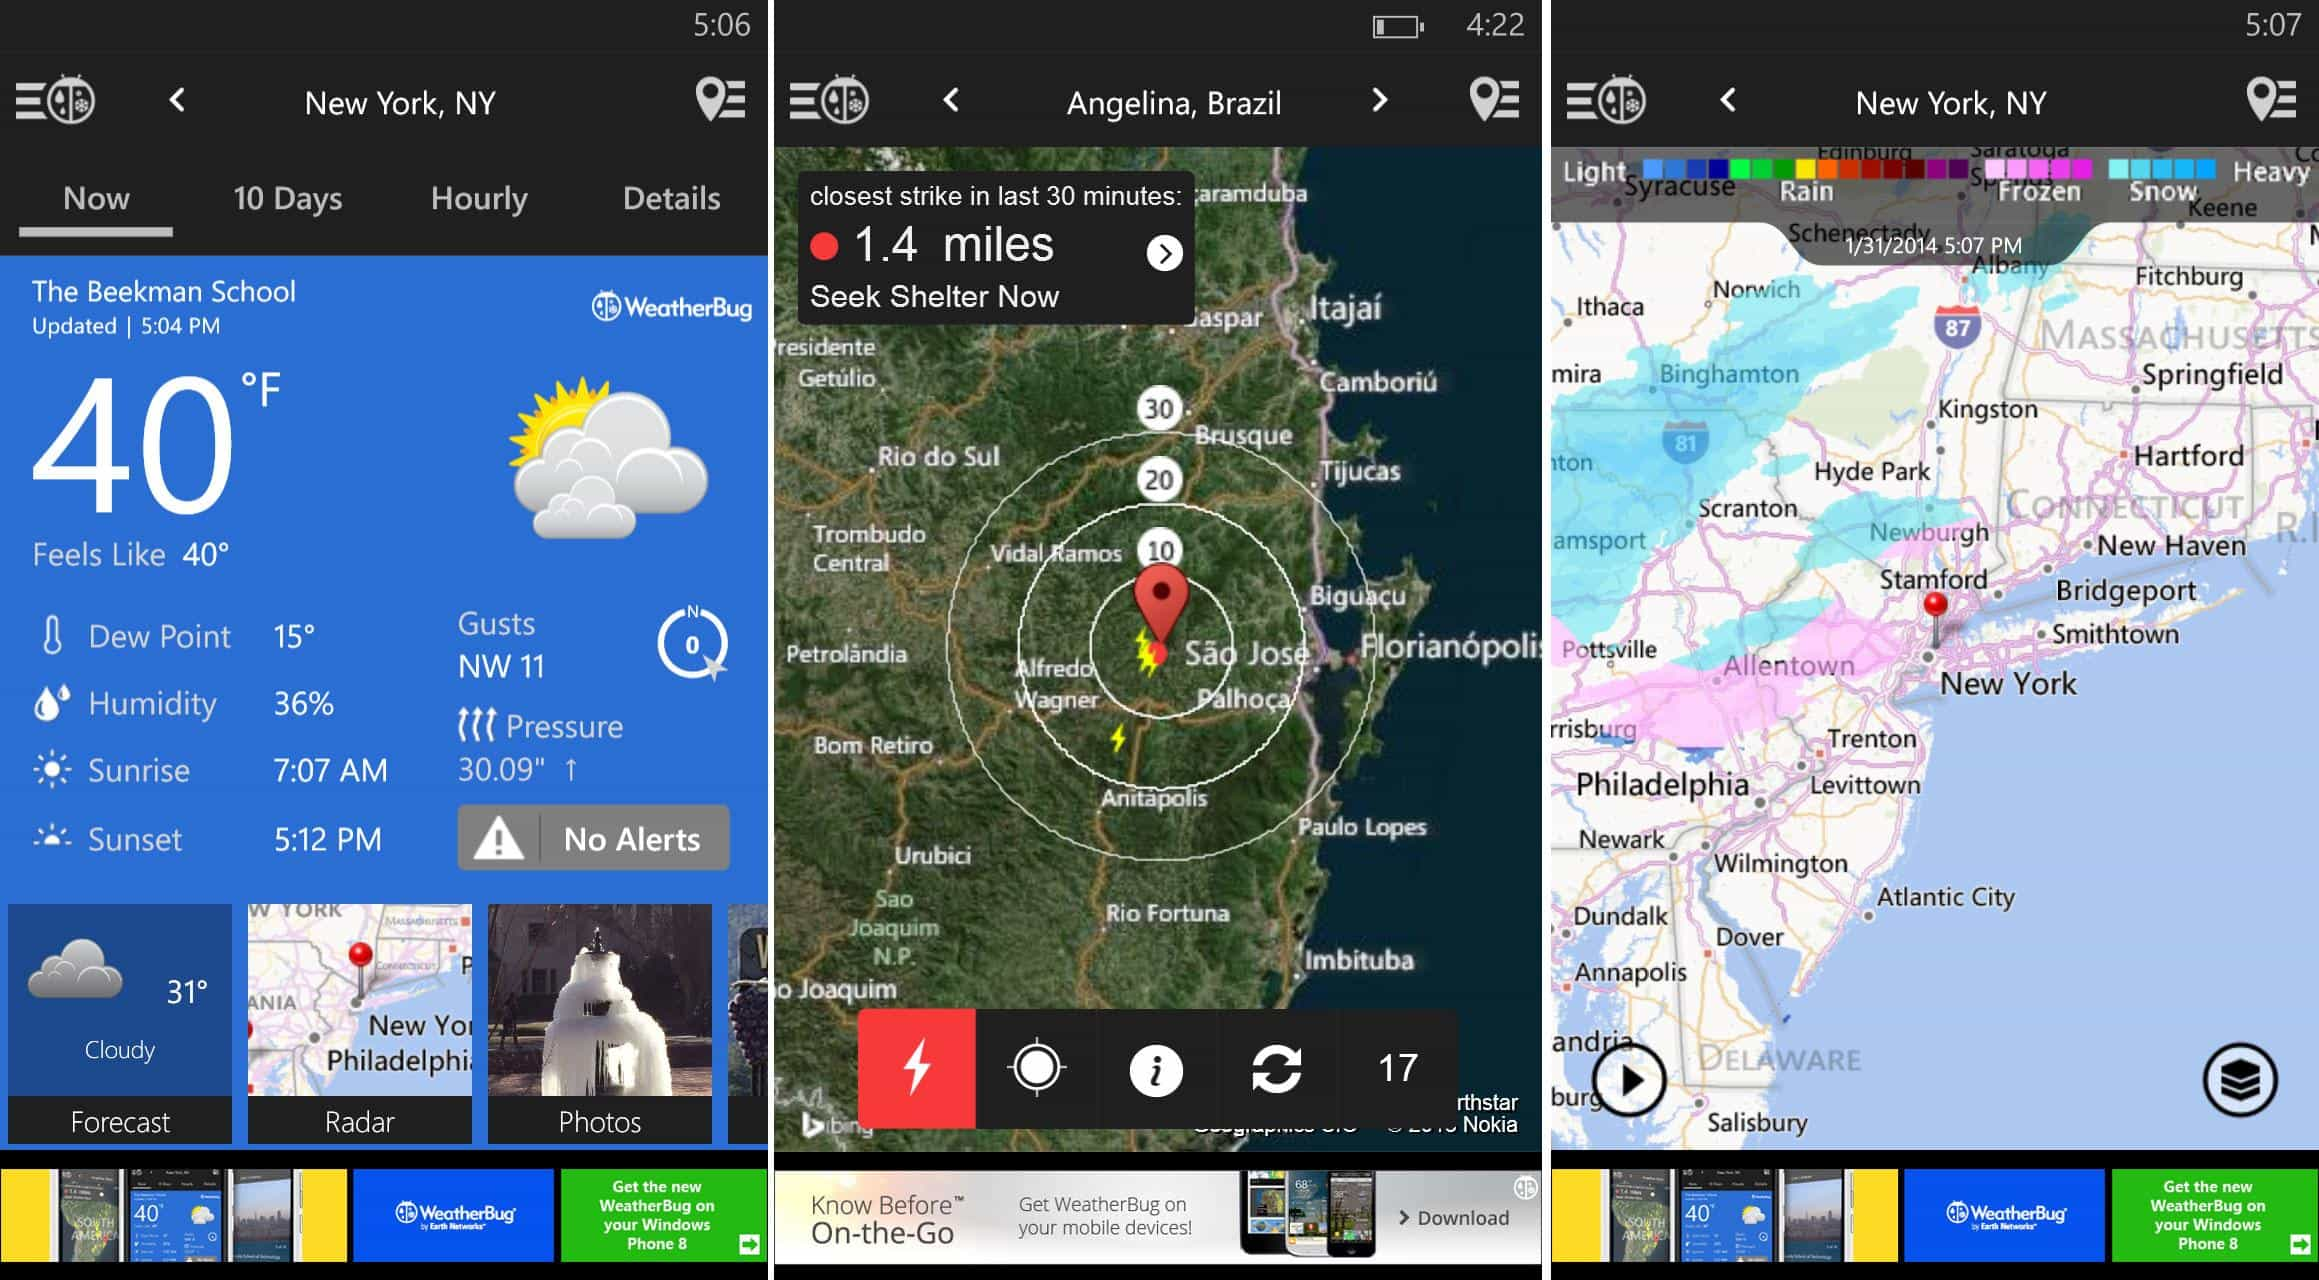 Free weather app WeatherBug is a perfect storm of features